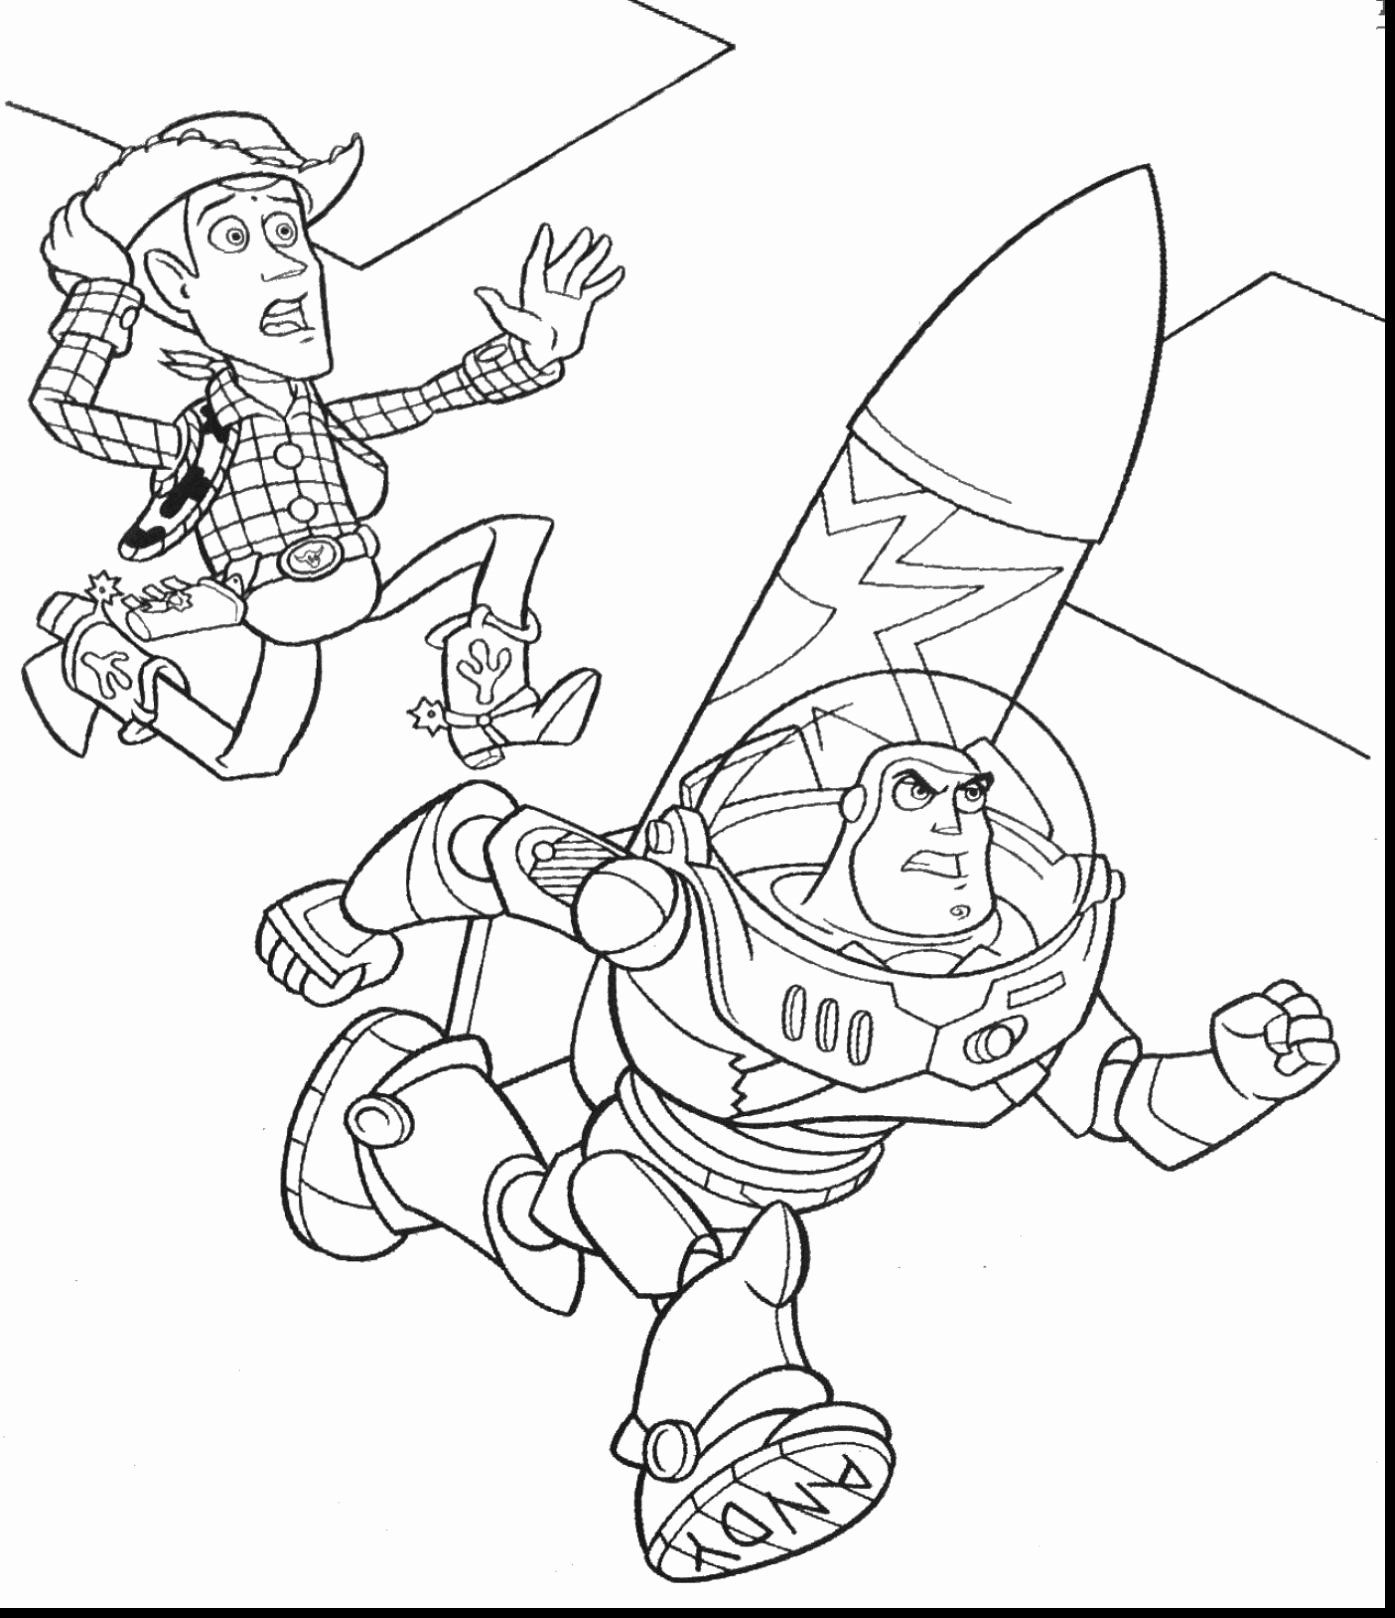 Toy Story Coloring Page Elegant Buzz Lightyear Coloring ...